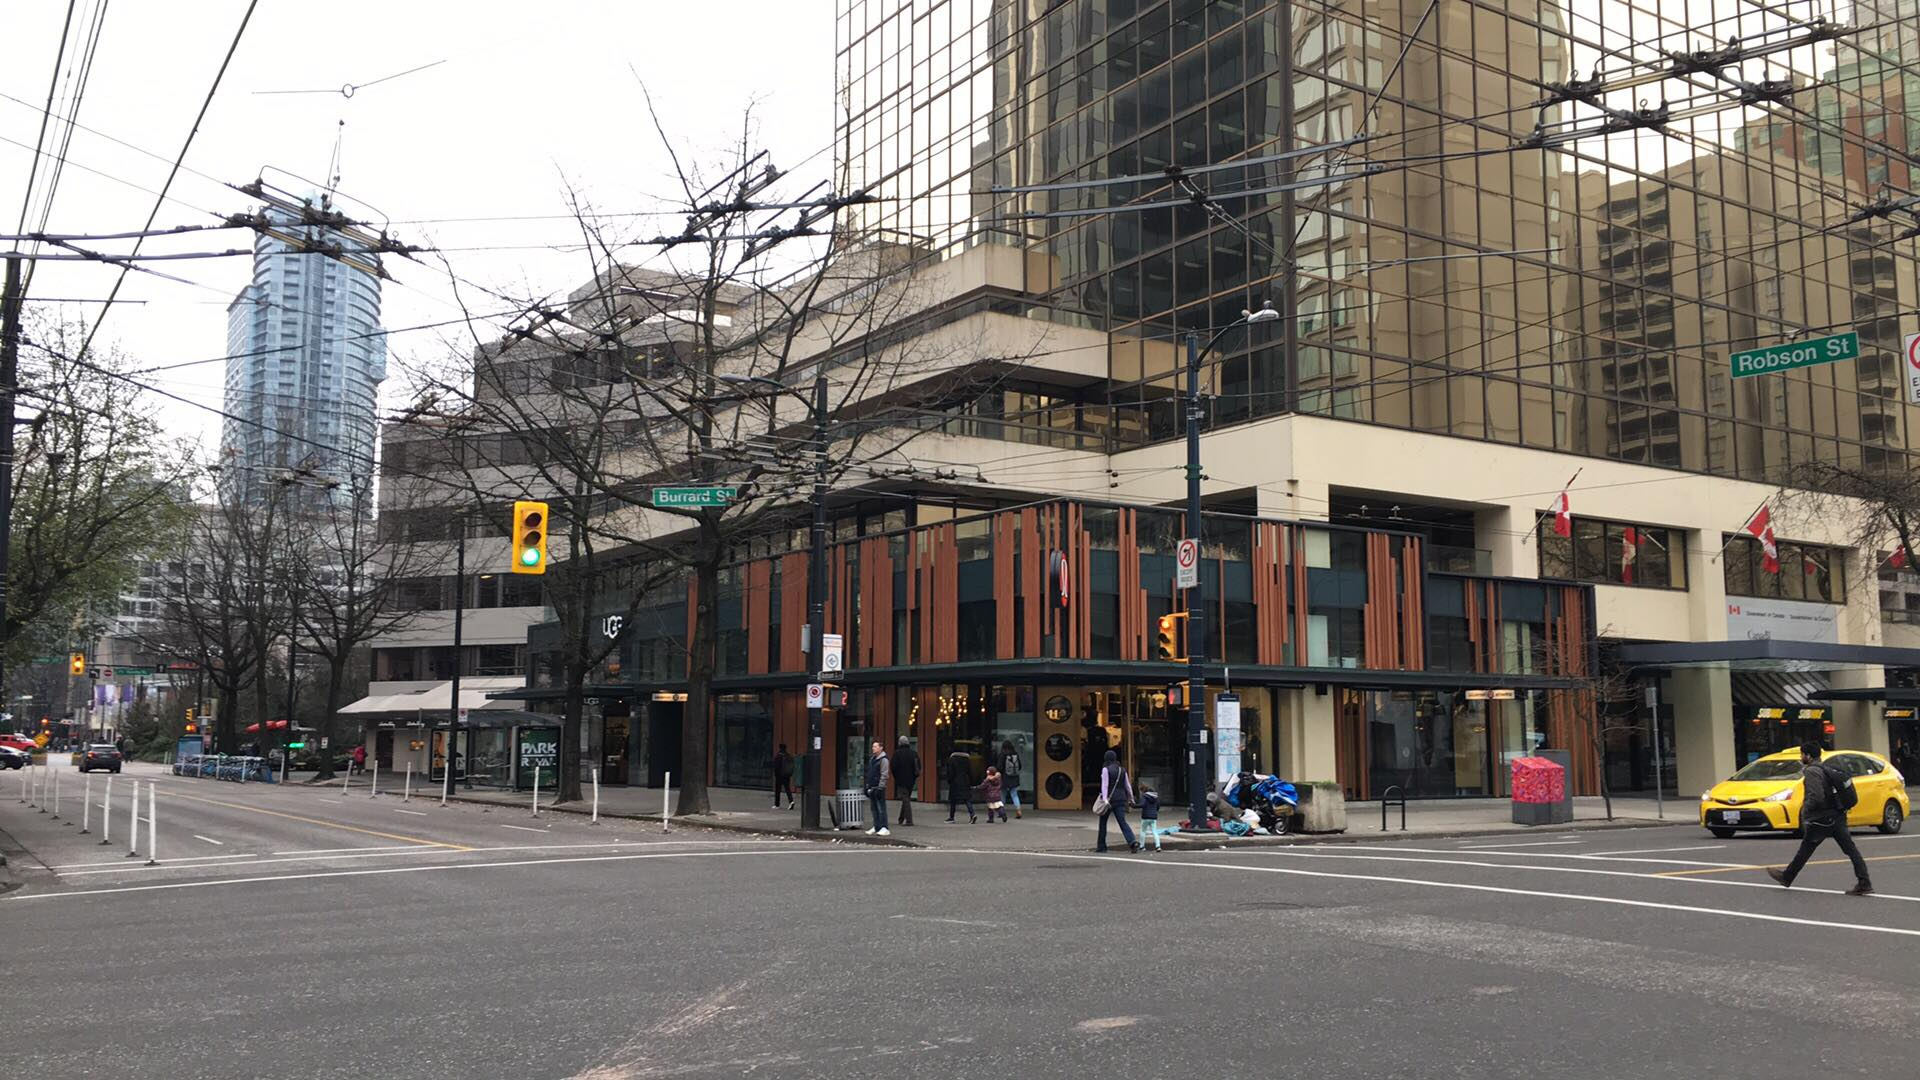 (Lululemon opened a unique flagship store at the southeast corner of Robson and Burrard Streets in 2015. Photo: Lee Rivett)